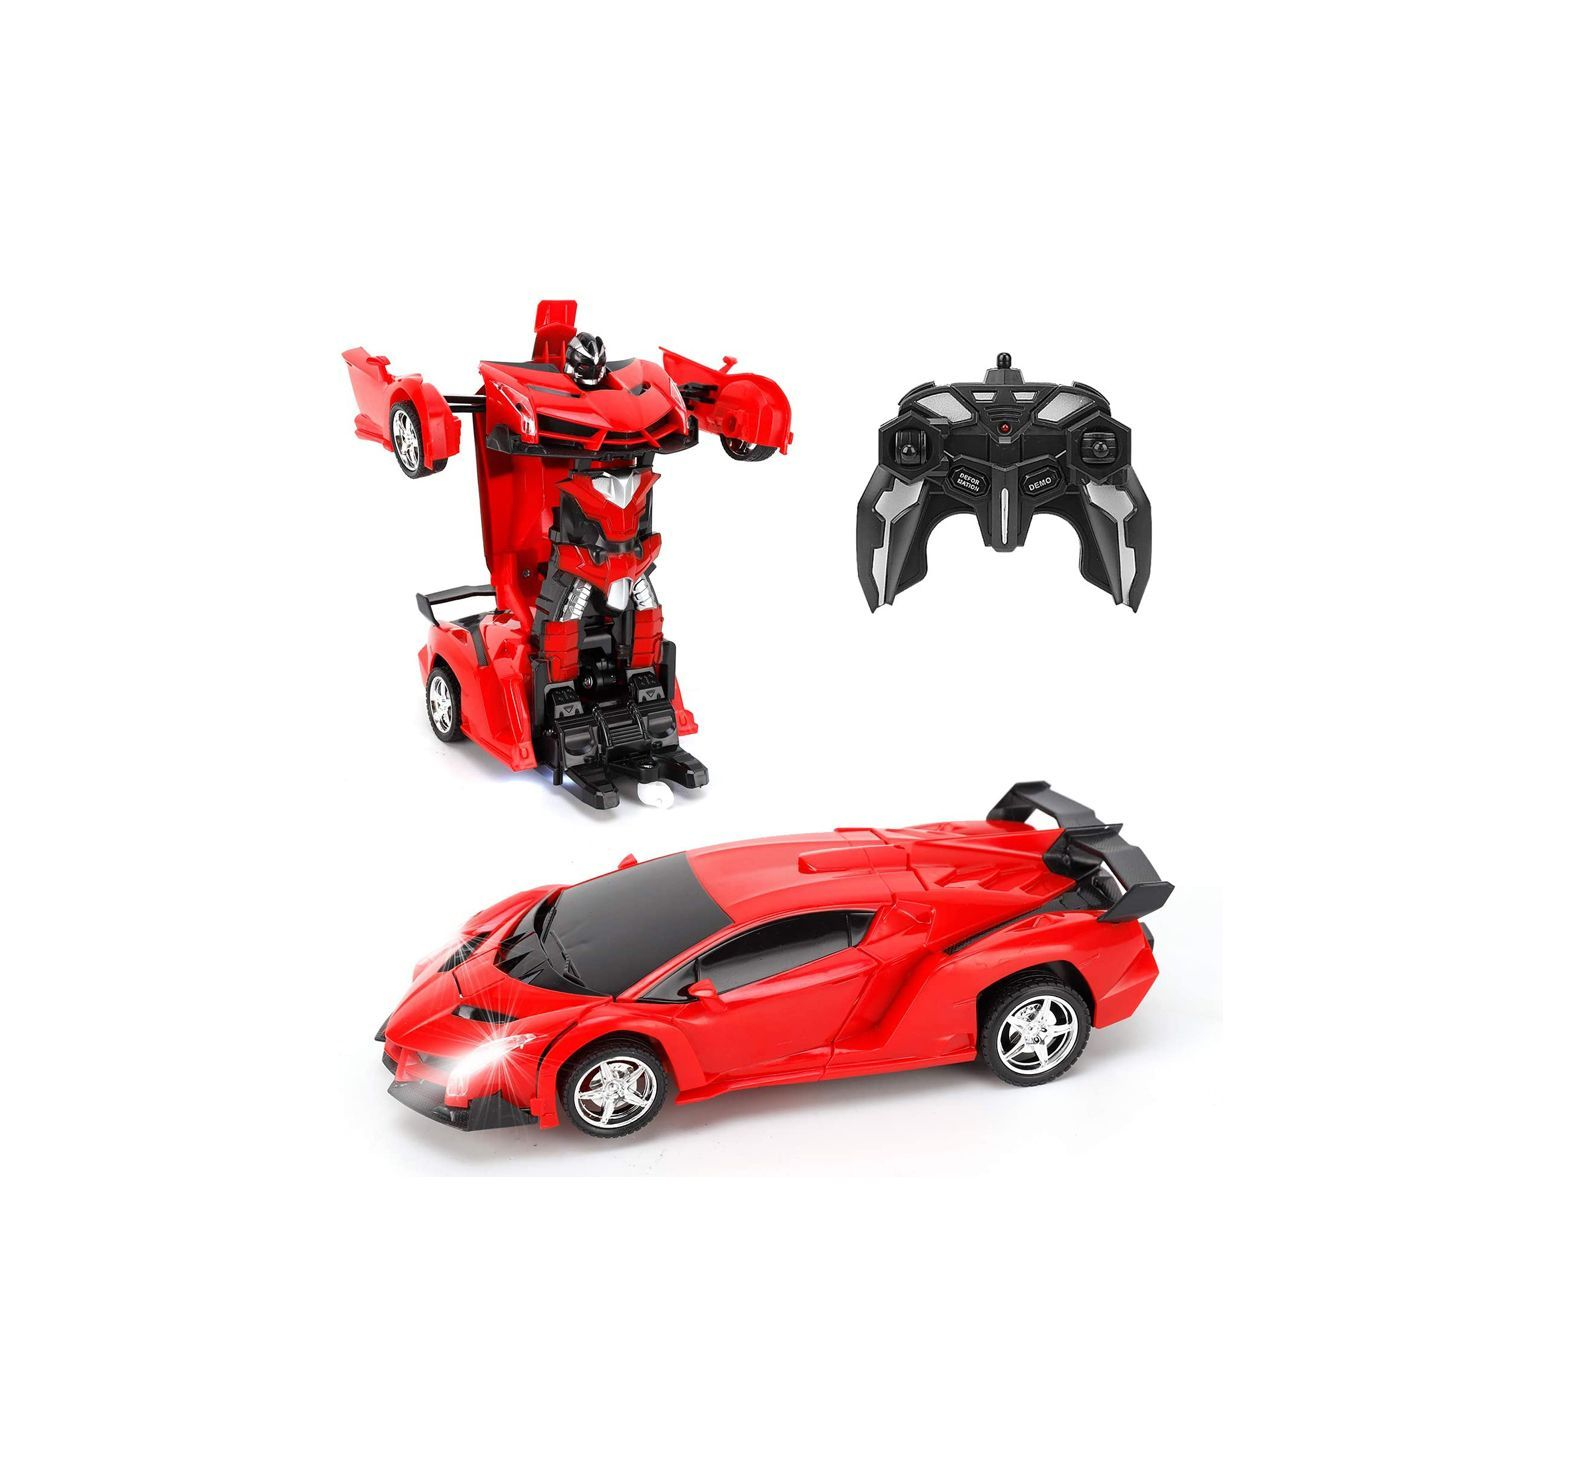 Details about  /Best Gift Christmas Gift Hot sale Diecasts Alloy Vehicle Car Truck Toys for Kids